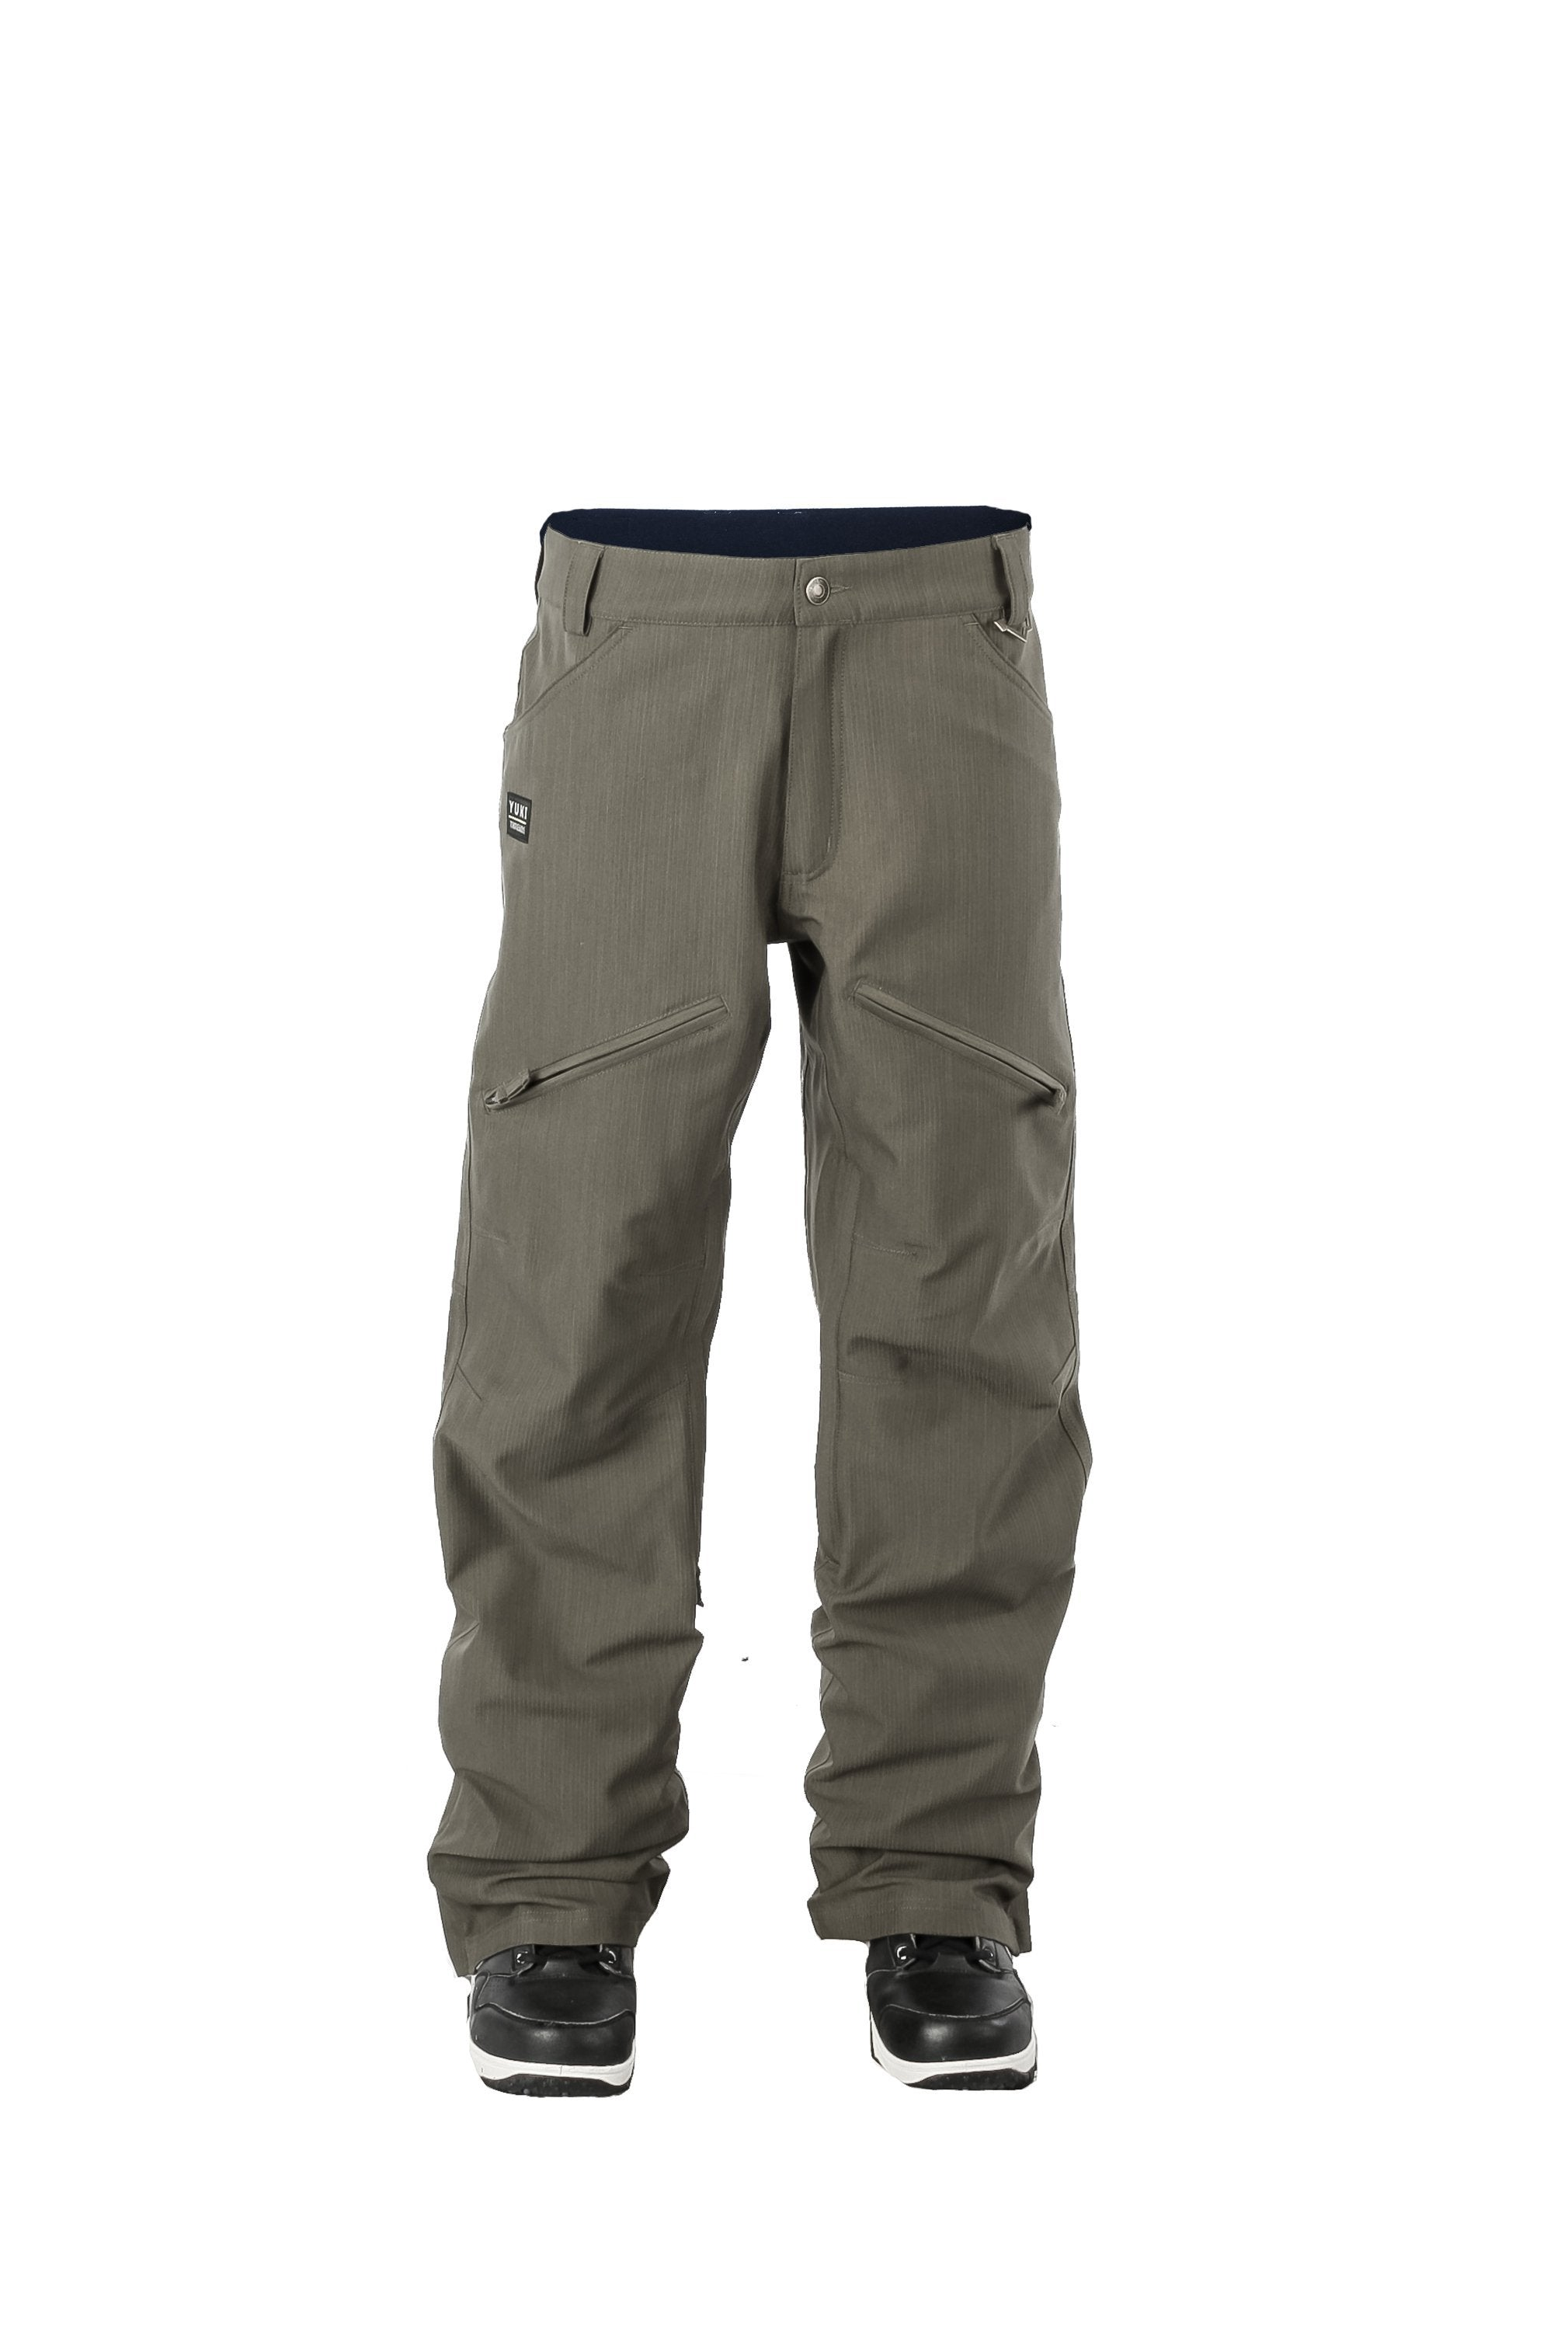 Winter 18 Street Pant Olive